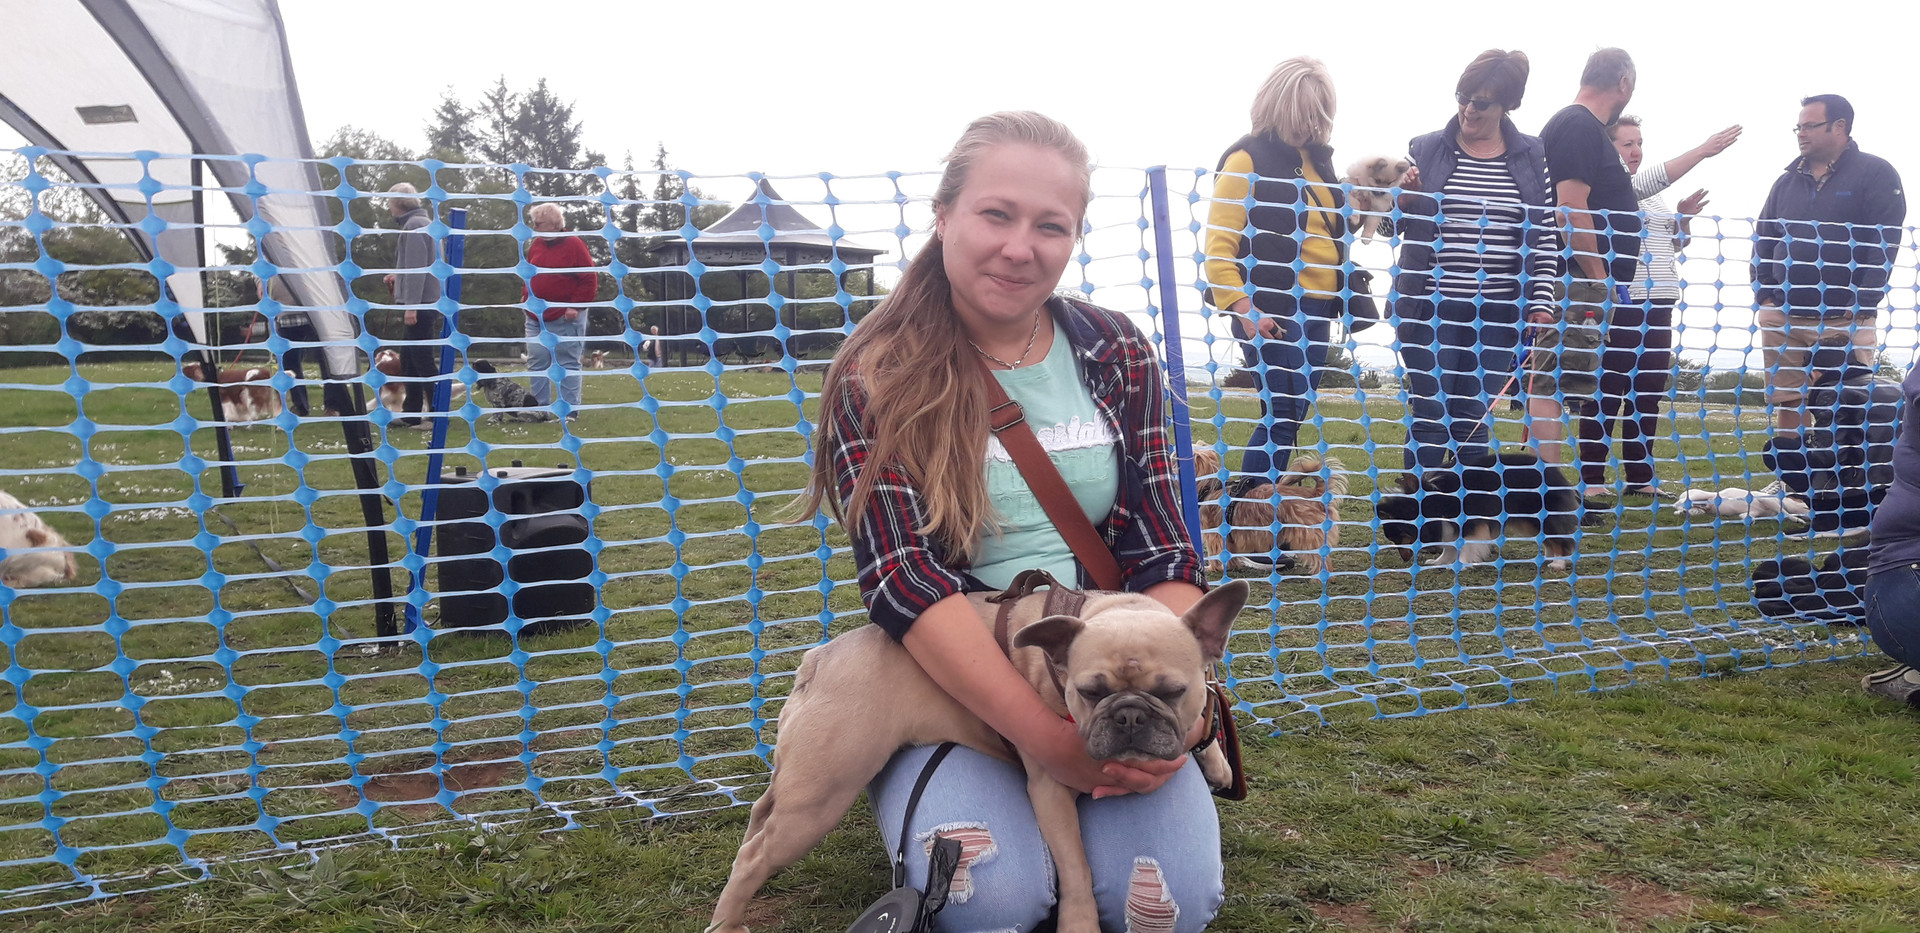 Our lovely vet with her rescued Frenchie